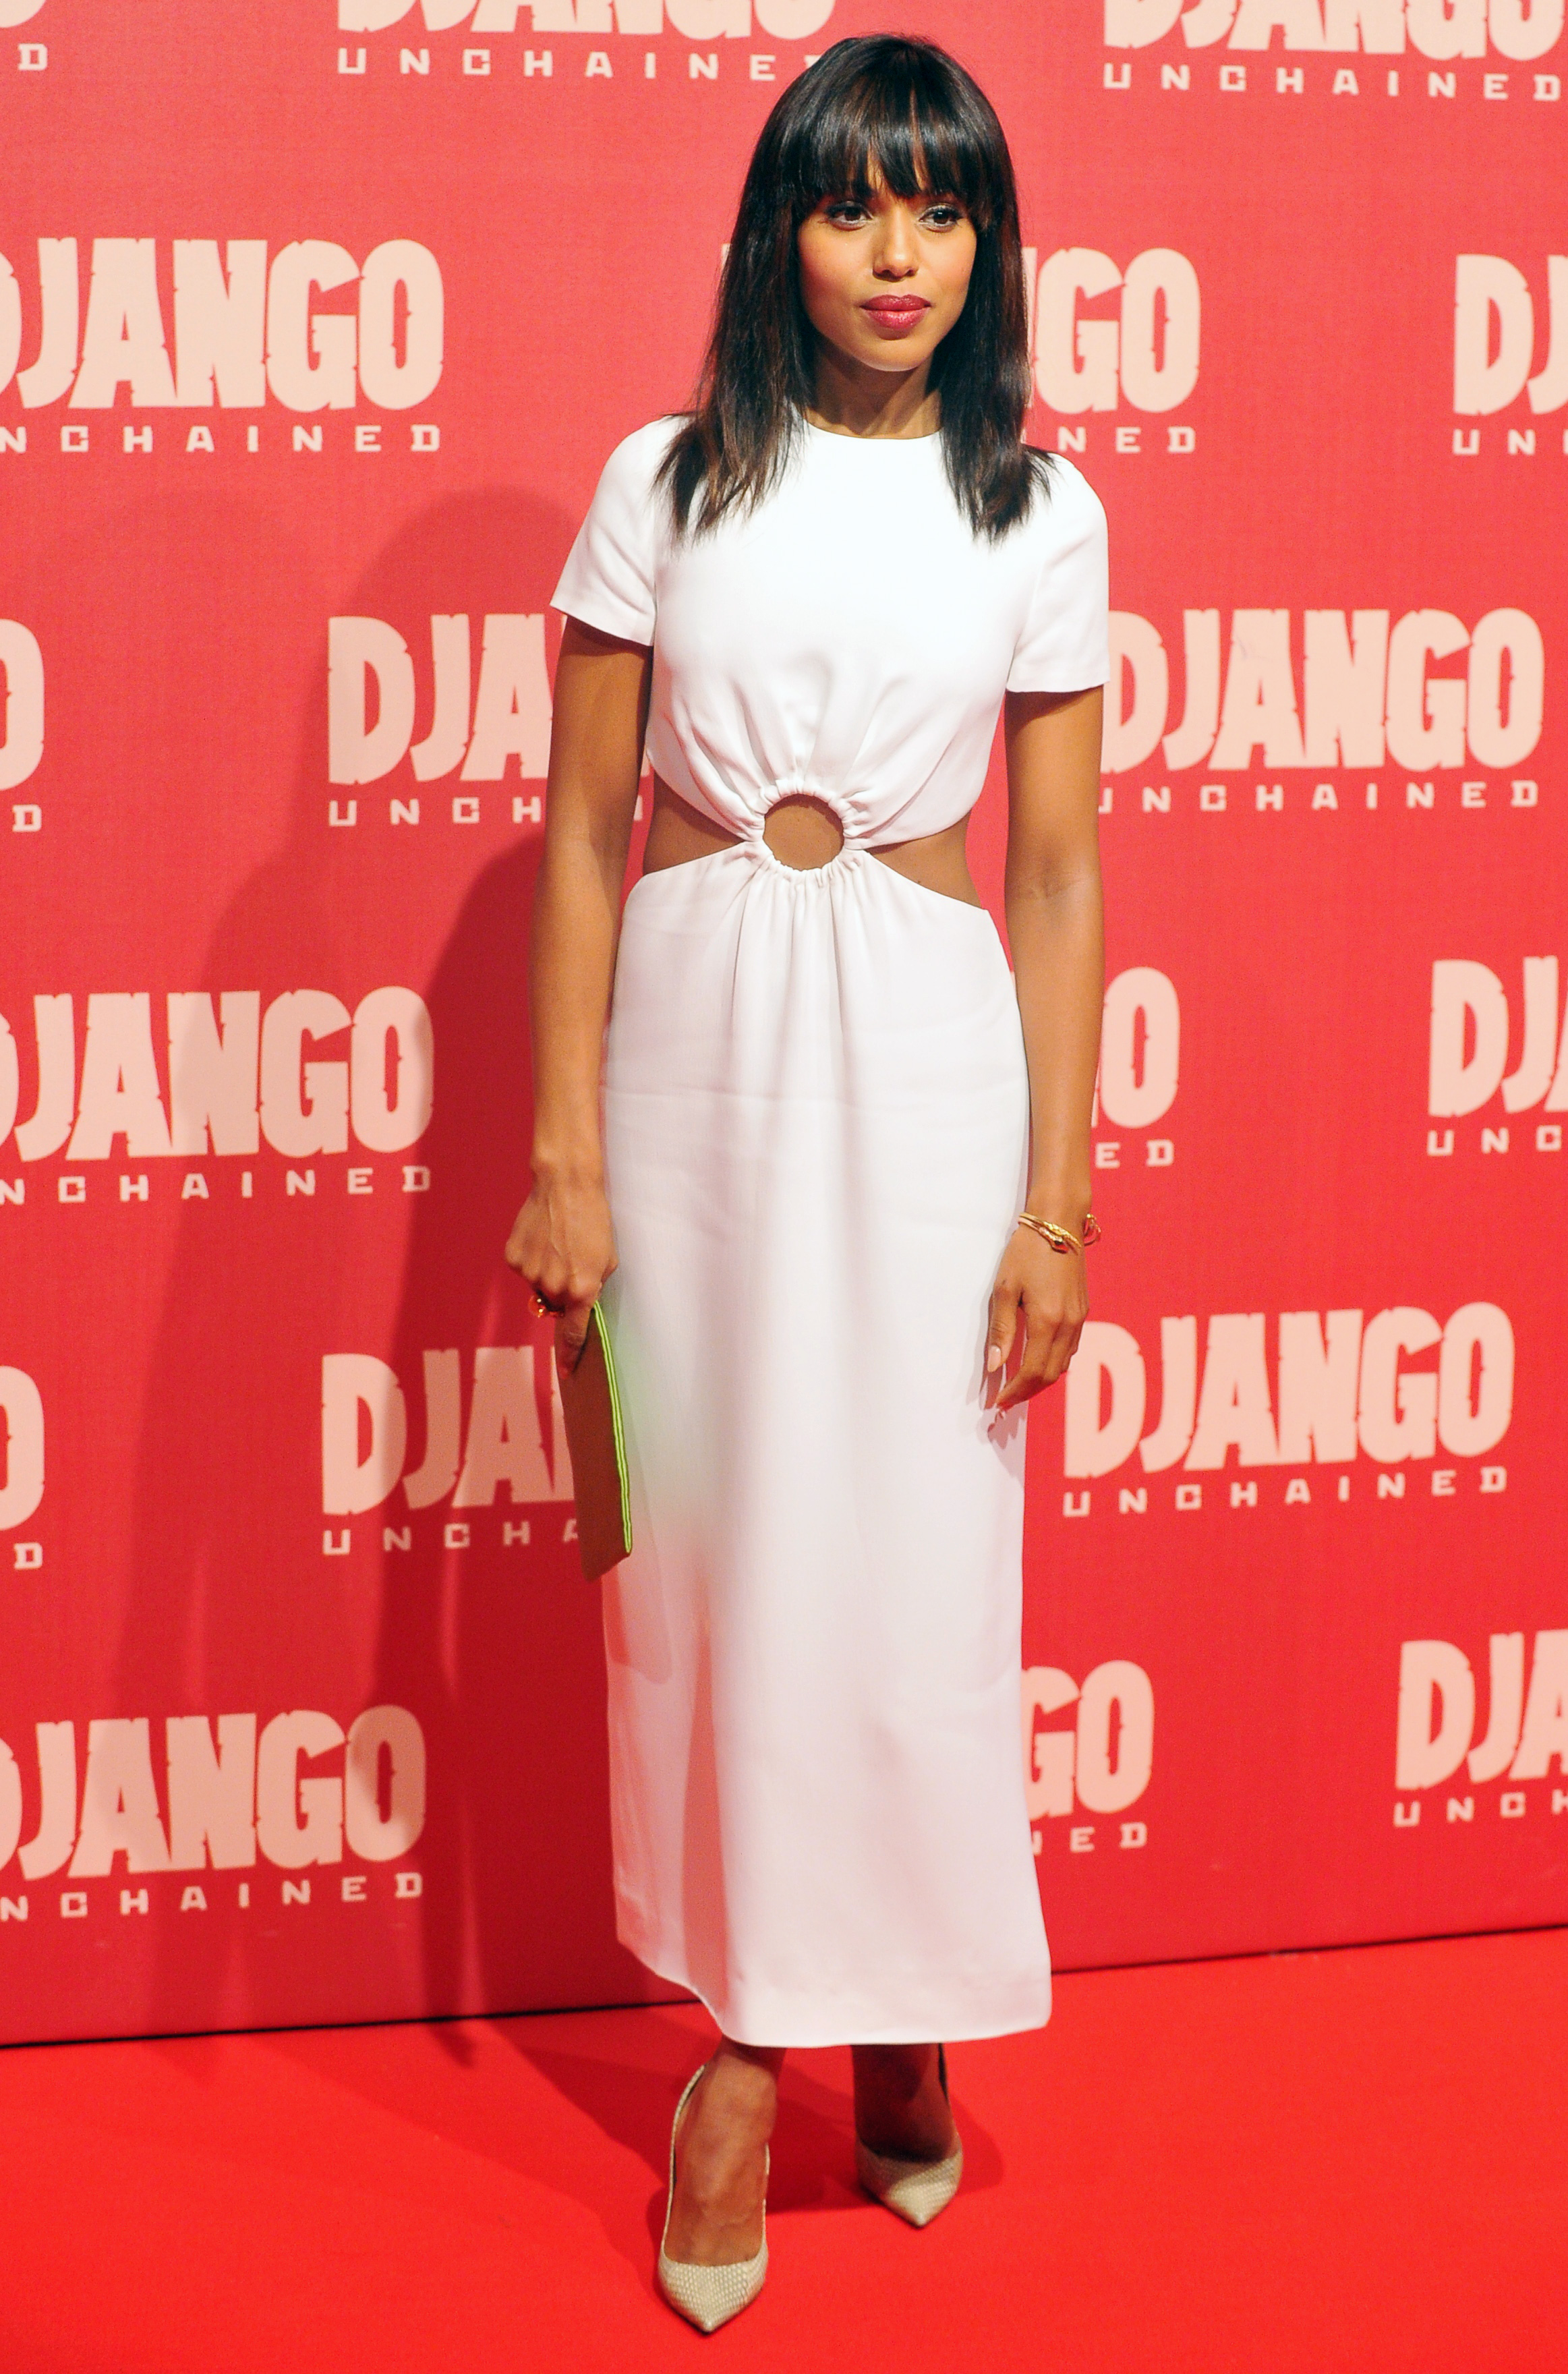 Kerry stepped out in a Winter white cutout Prada dress for the film's premiere in Rome, being sure to keep the look ultrafeminine with pointed-toe pumps, a sleek hairdo, and a sweep of red lipstick. She also added a slim green clutch and Ippolita cocktail ring.